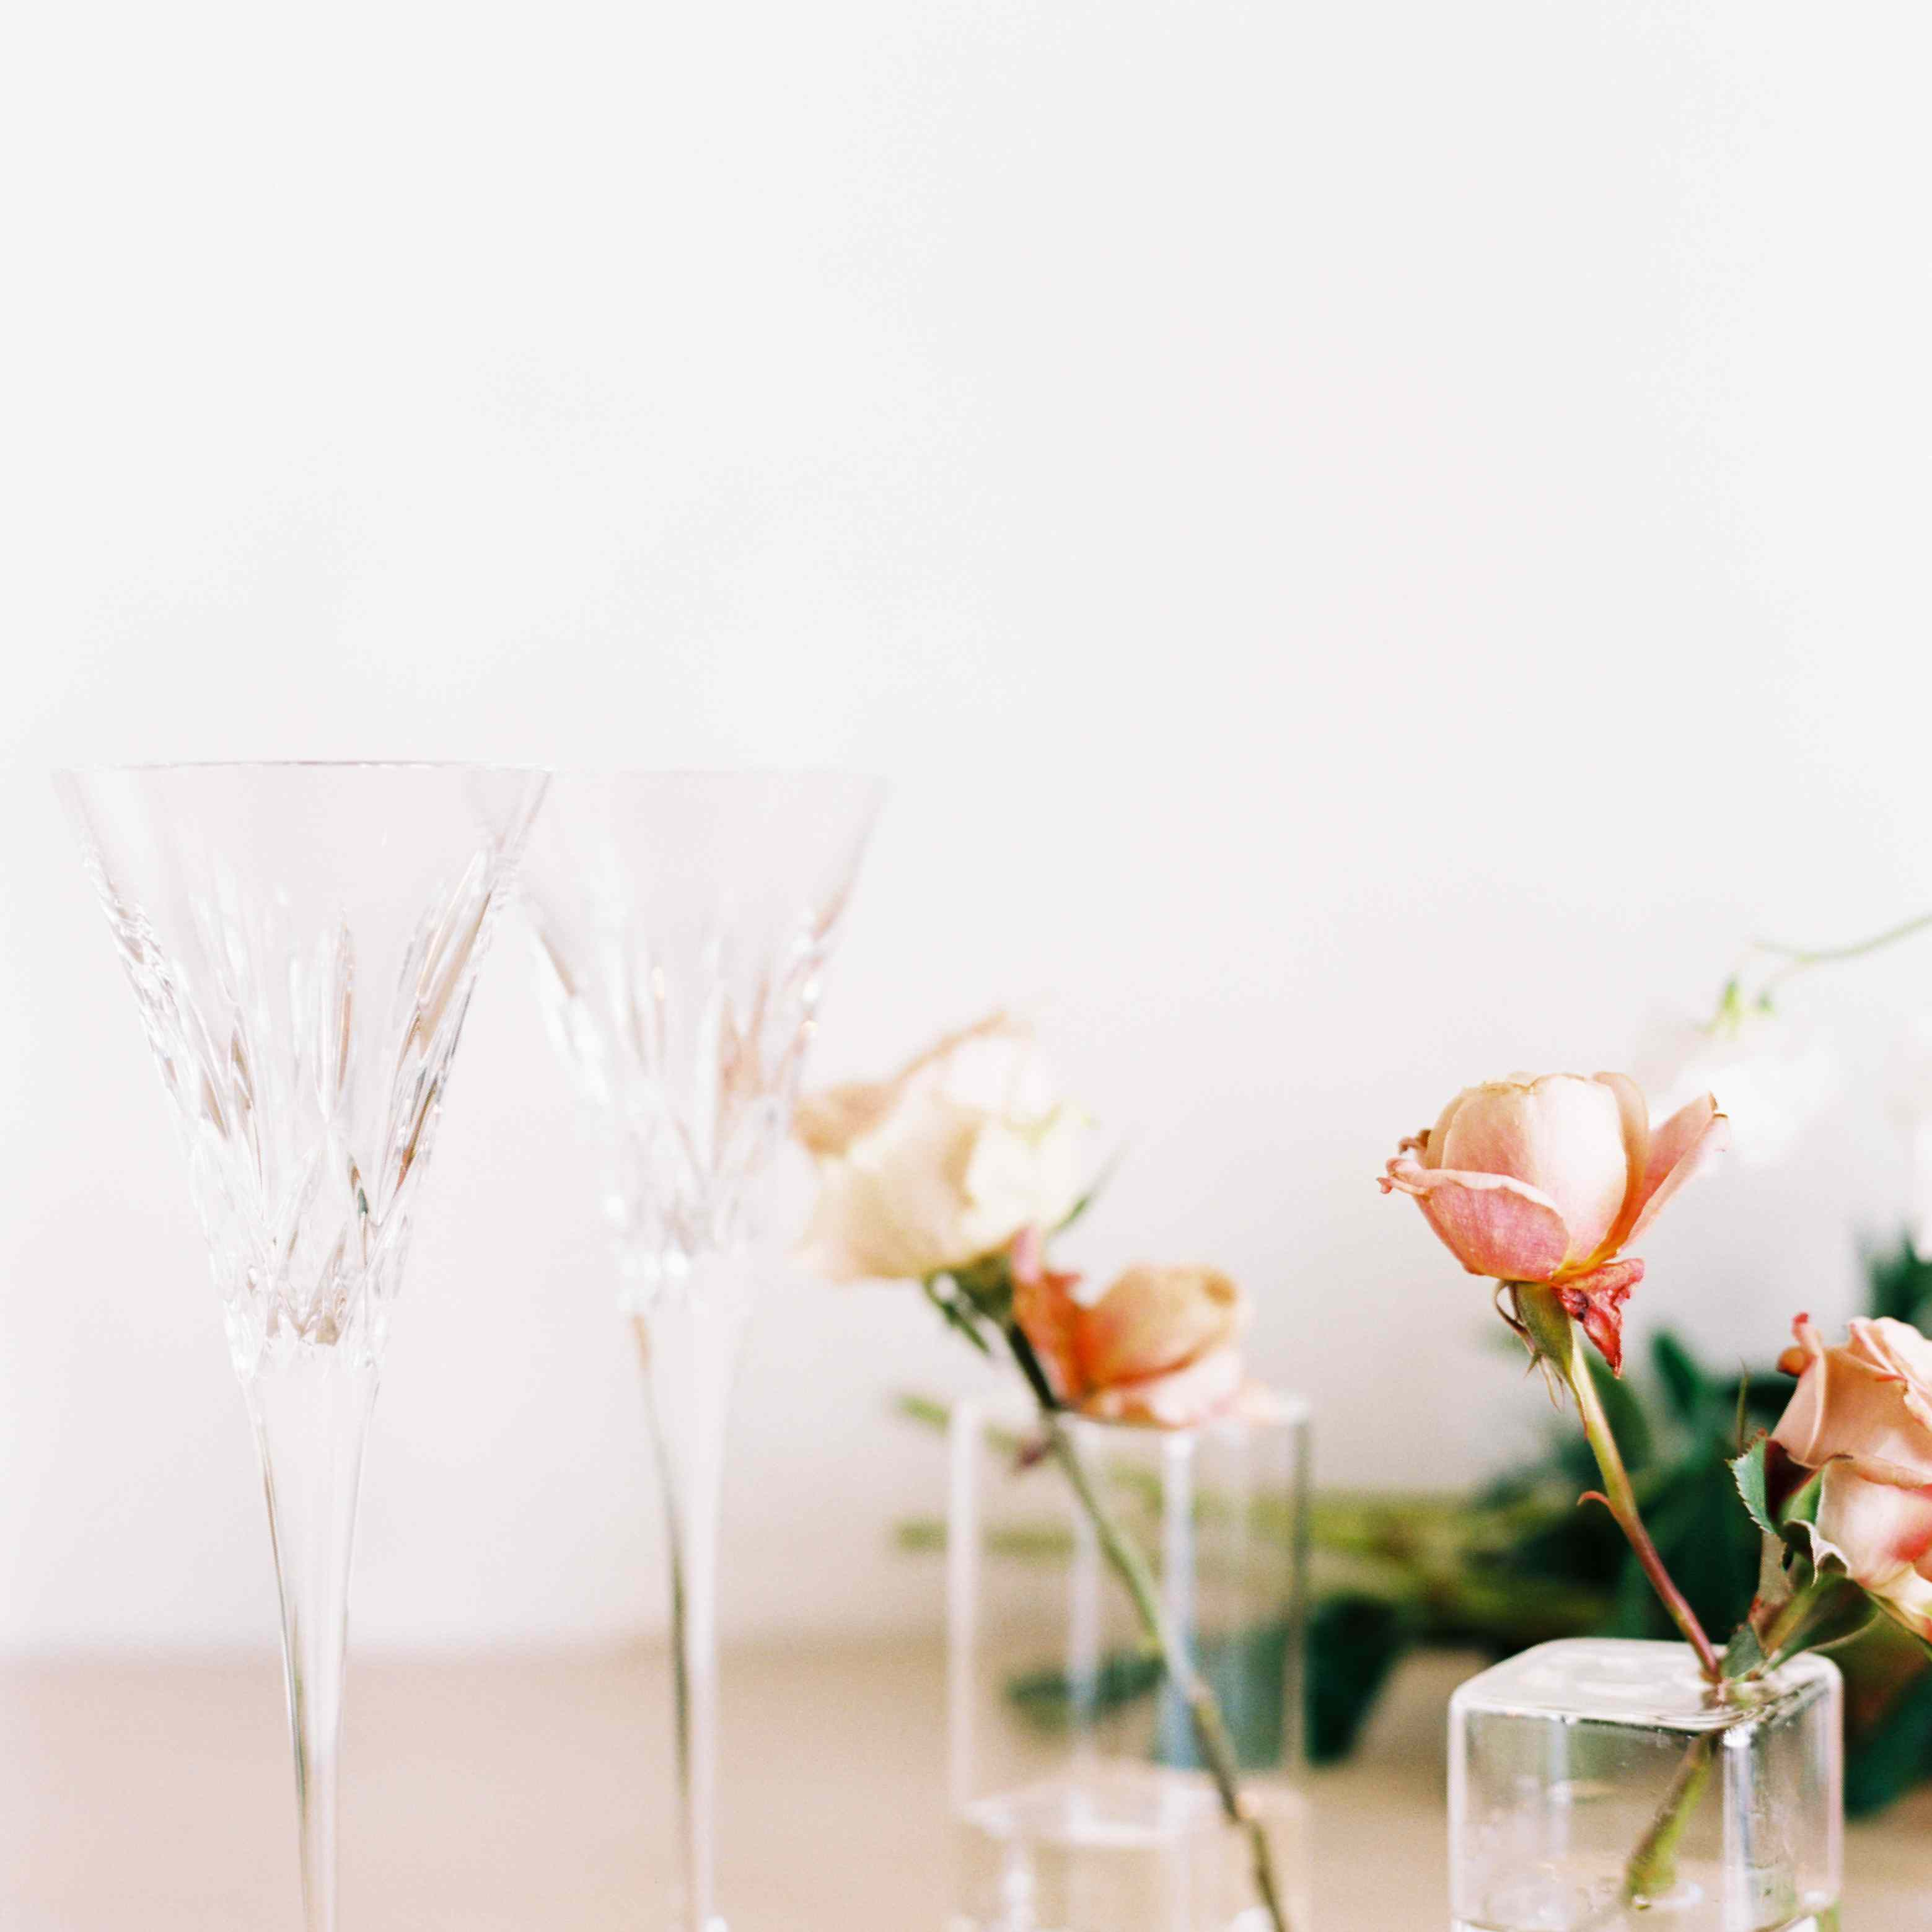 <p>Florals and champagne glasses</p><br><br>